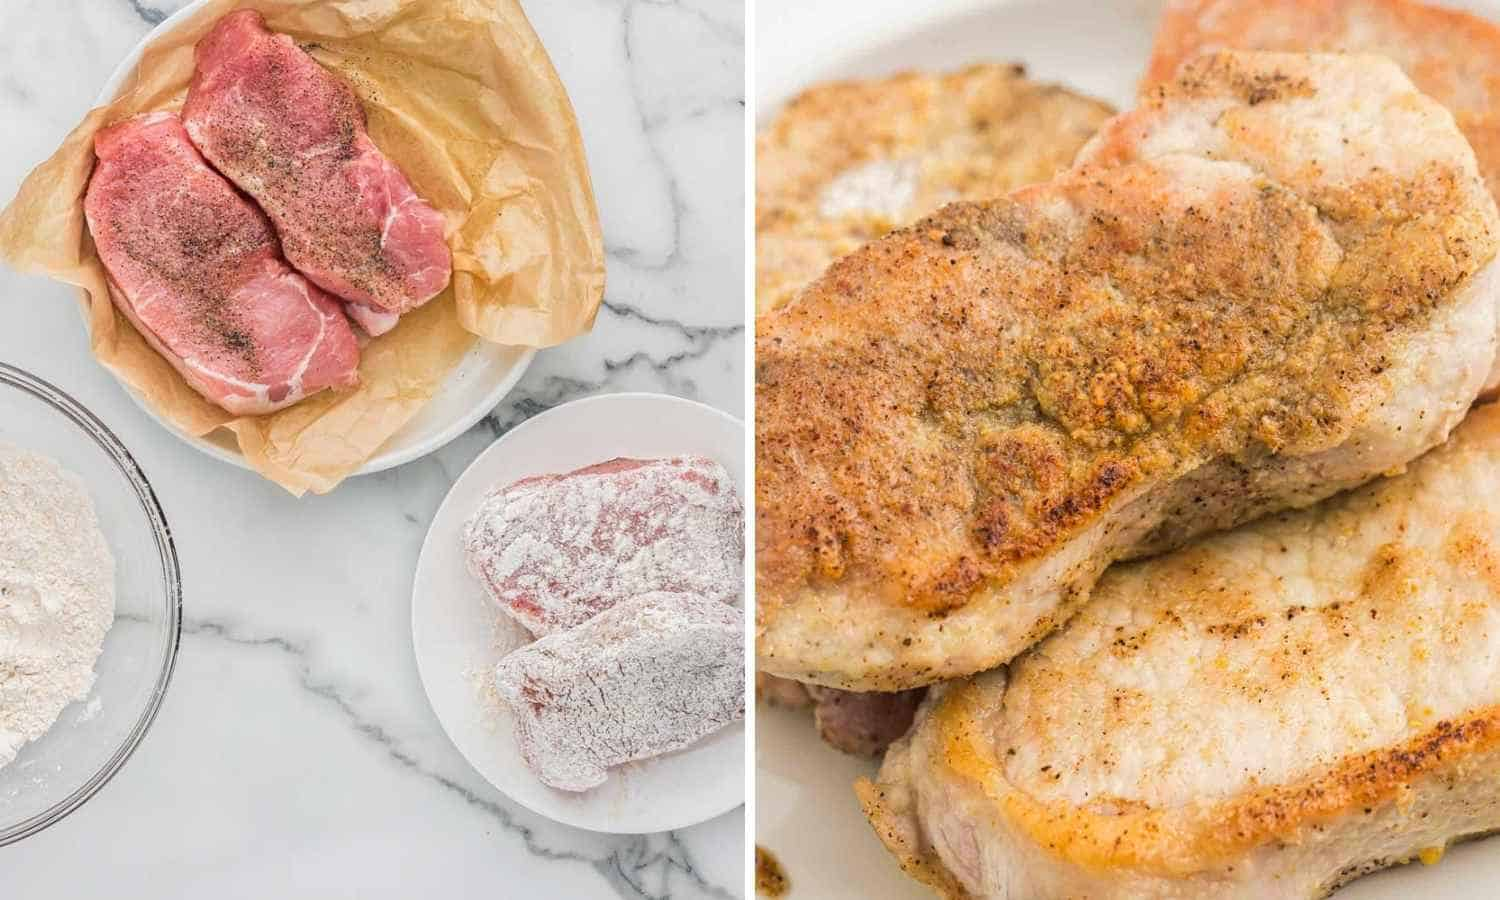 Dredging the pork chops in flour and then browning them